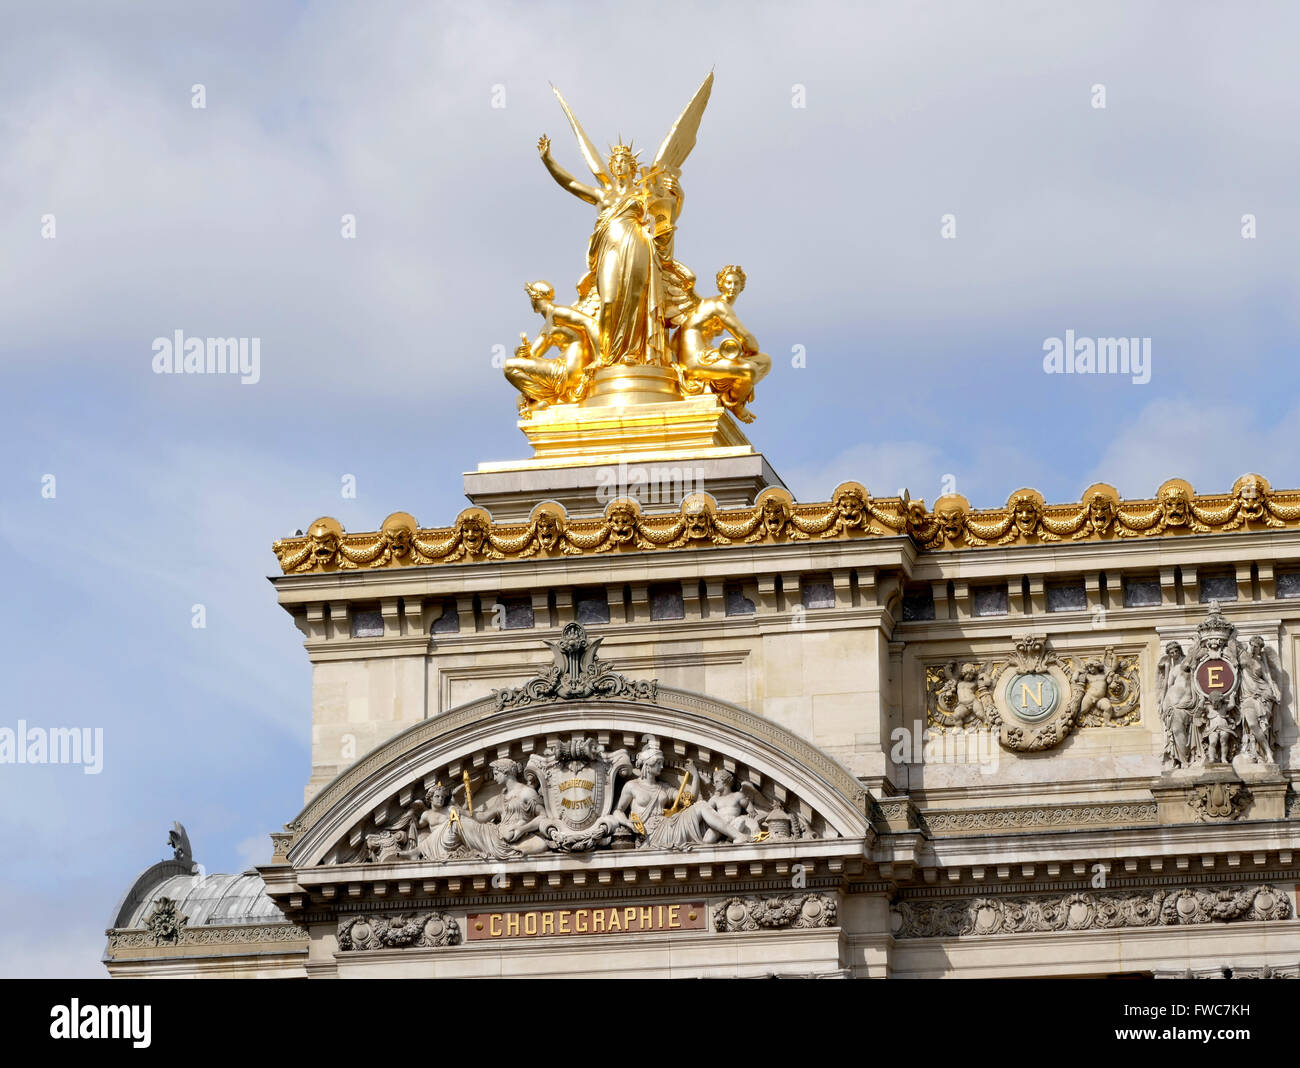 Gumery Harmony statue on top of the Palais Garnier - Paris Opera House, France. - Stock Image